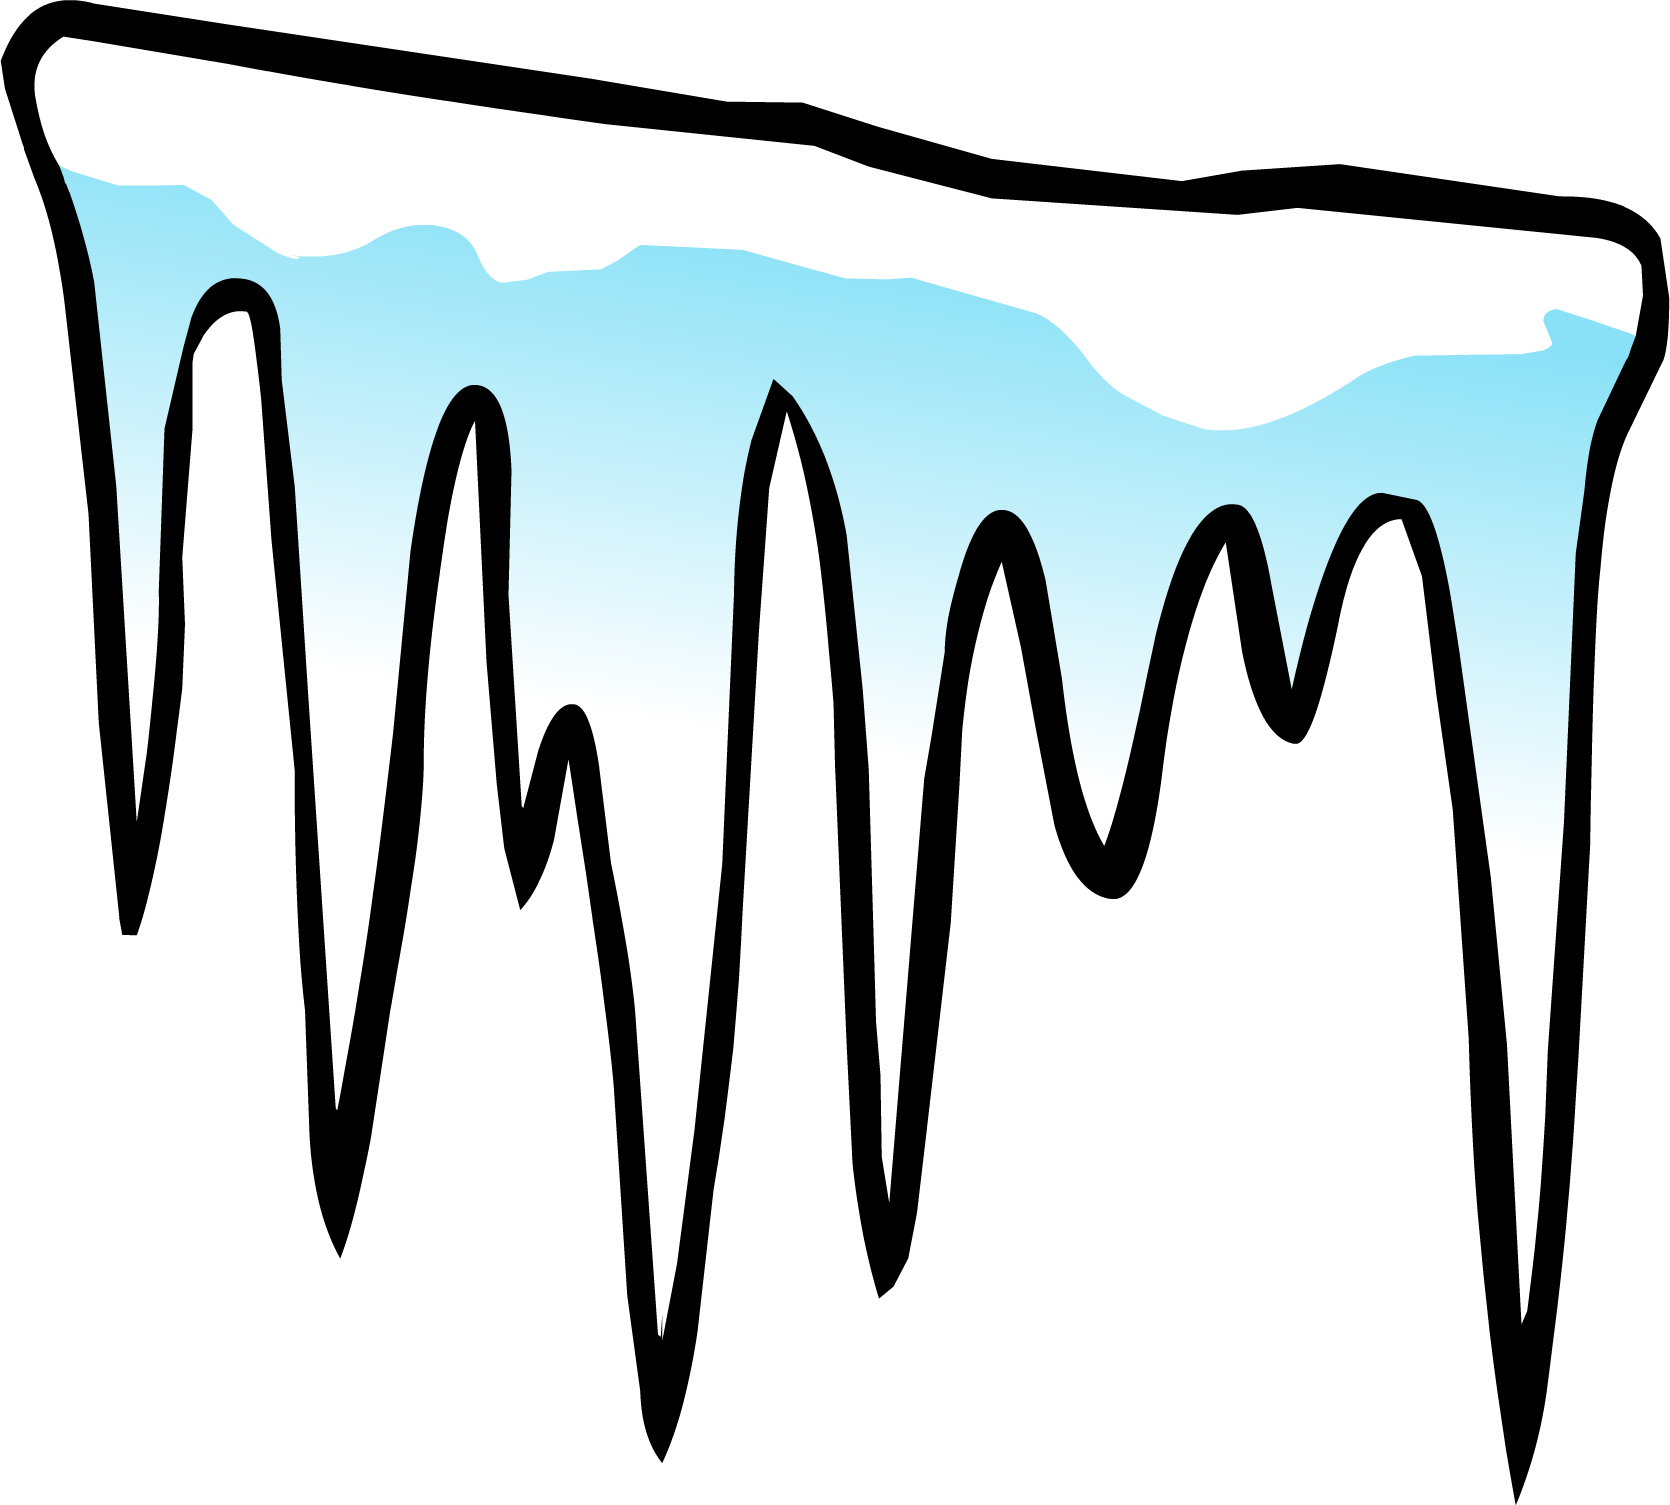 Image - Icicles sprite 013.png | Club Penguin Wiki | FANDOM powered ...